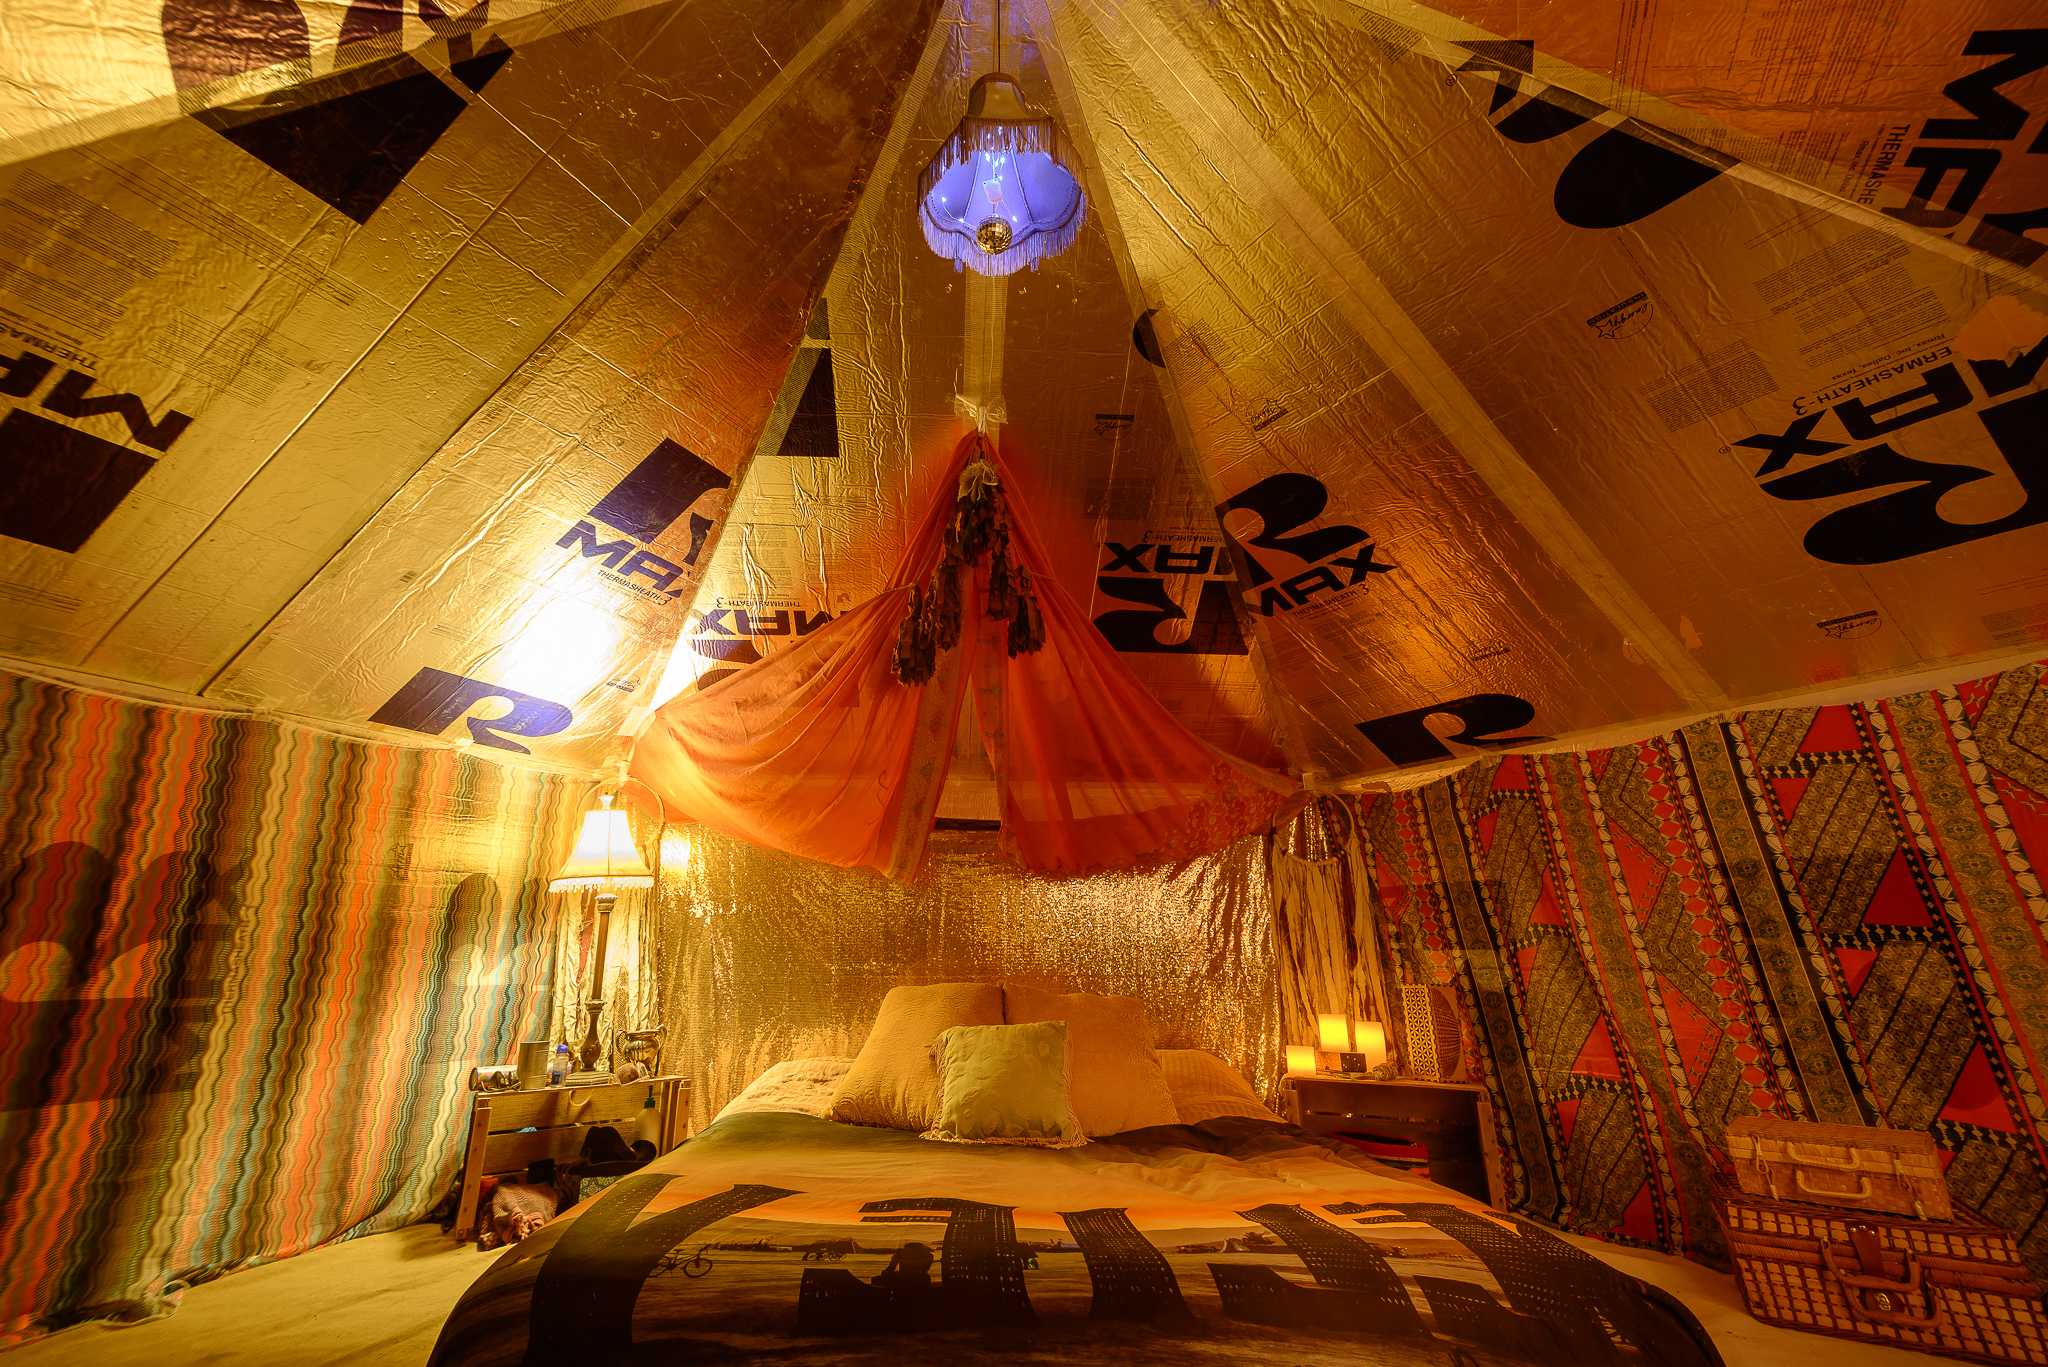 Hotel comfort and gypsy stylings in the harshest of deserts. This is a direct result from previous year's inspirations and influences on the playa.